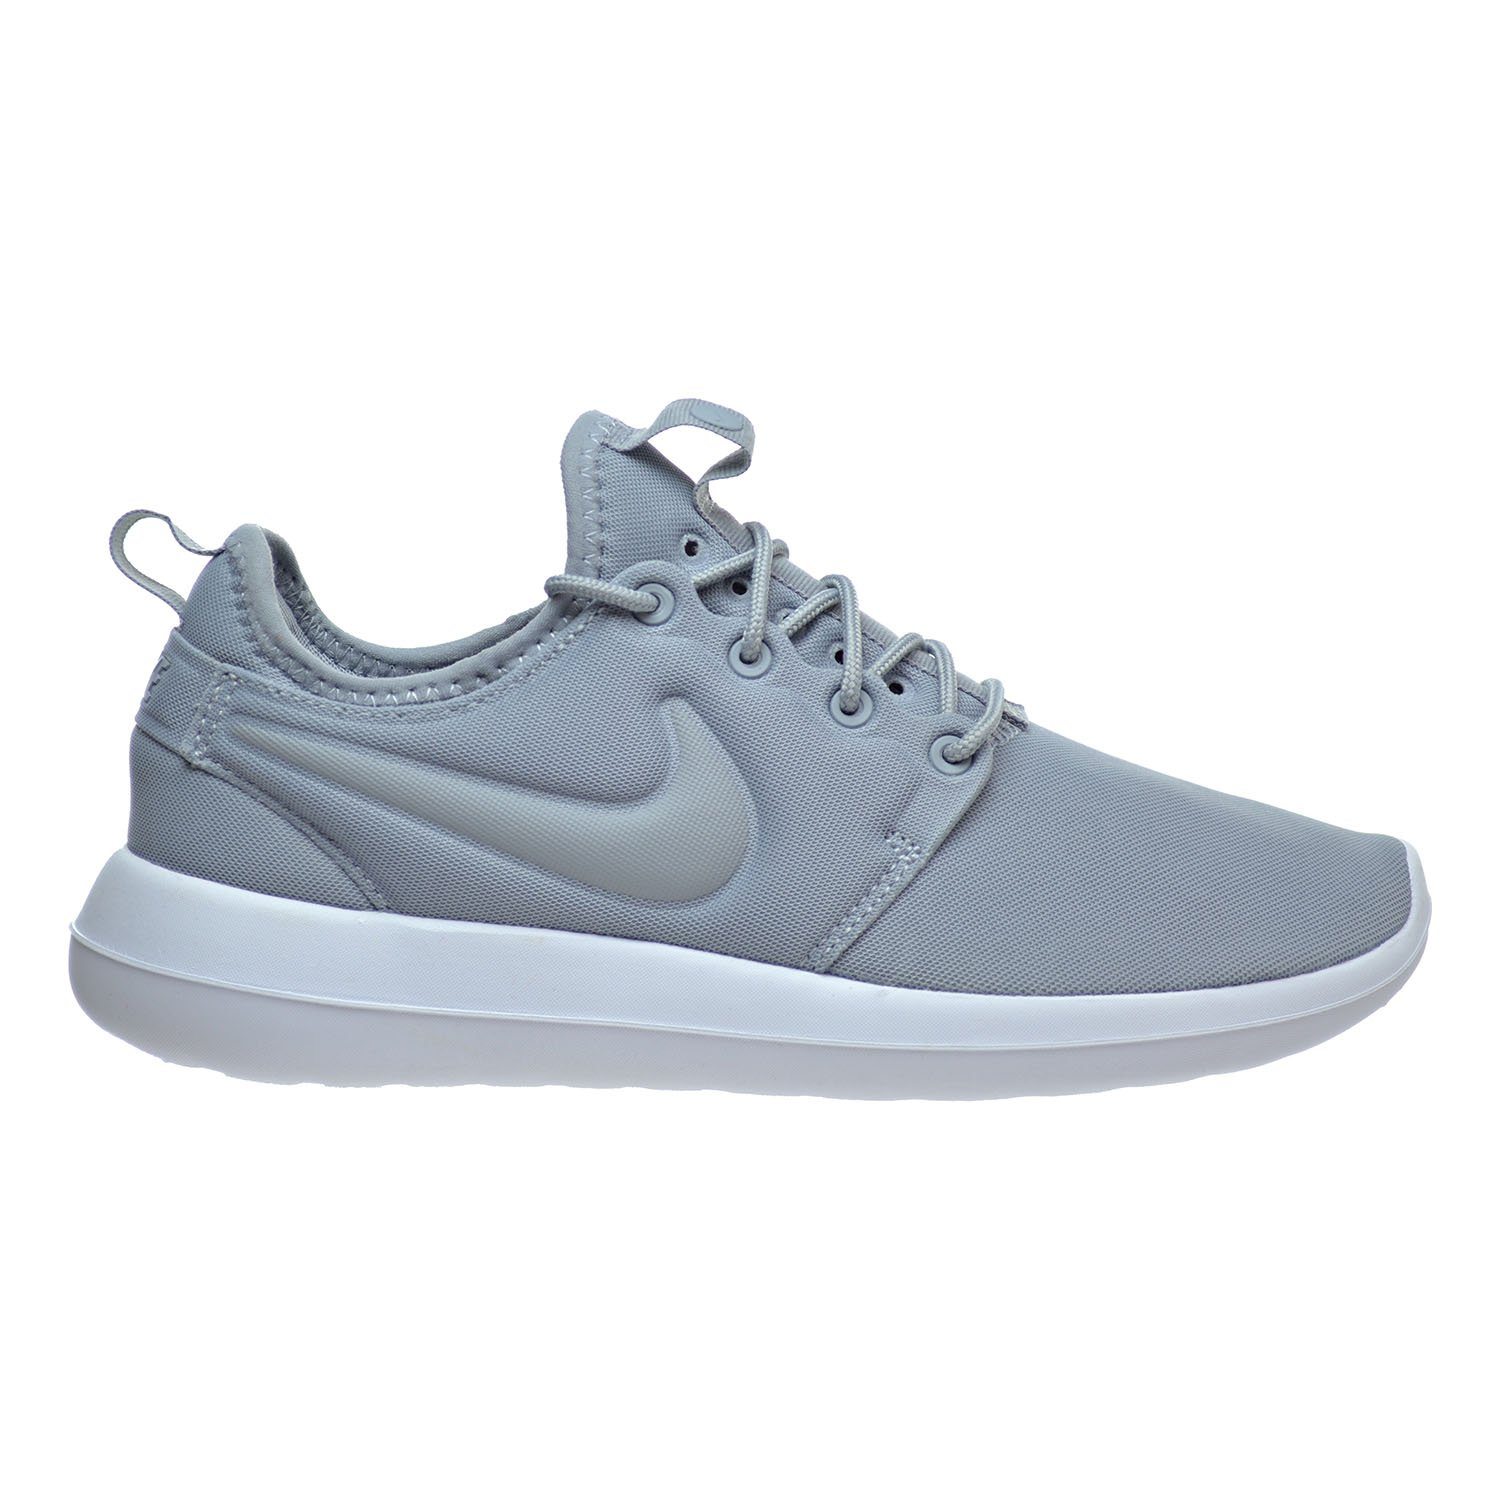 NIKE Roshe Two Women's Shoes Wolf Grey/Wolf Grey 844931-001 (10.5 B(M) US) by NIKE